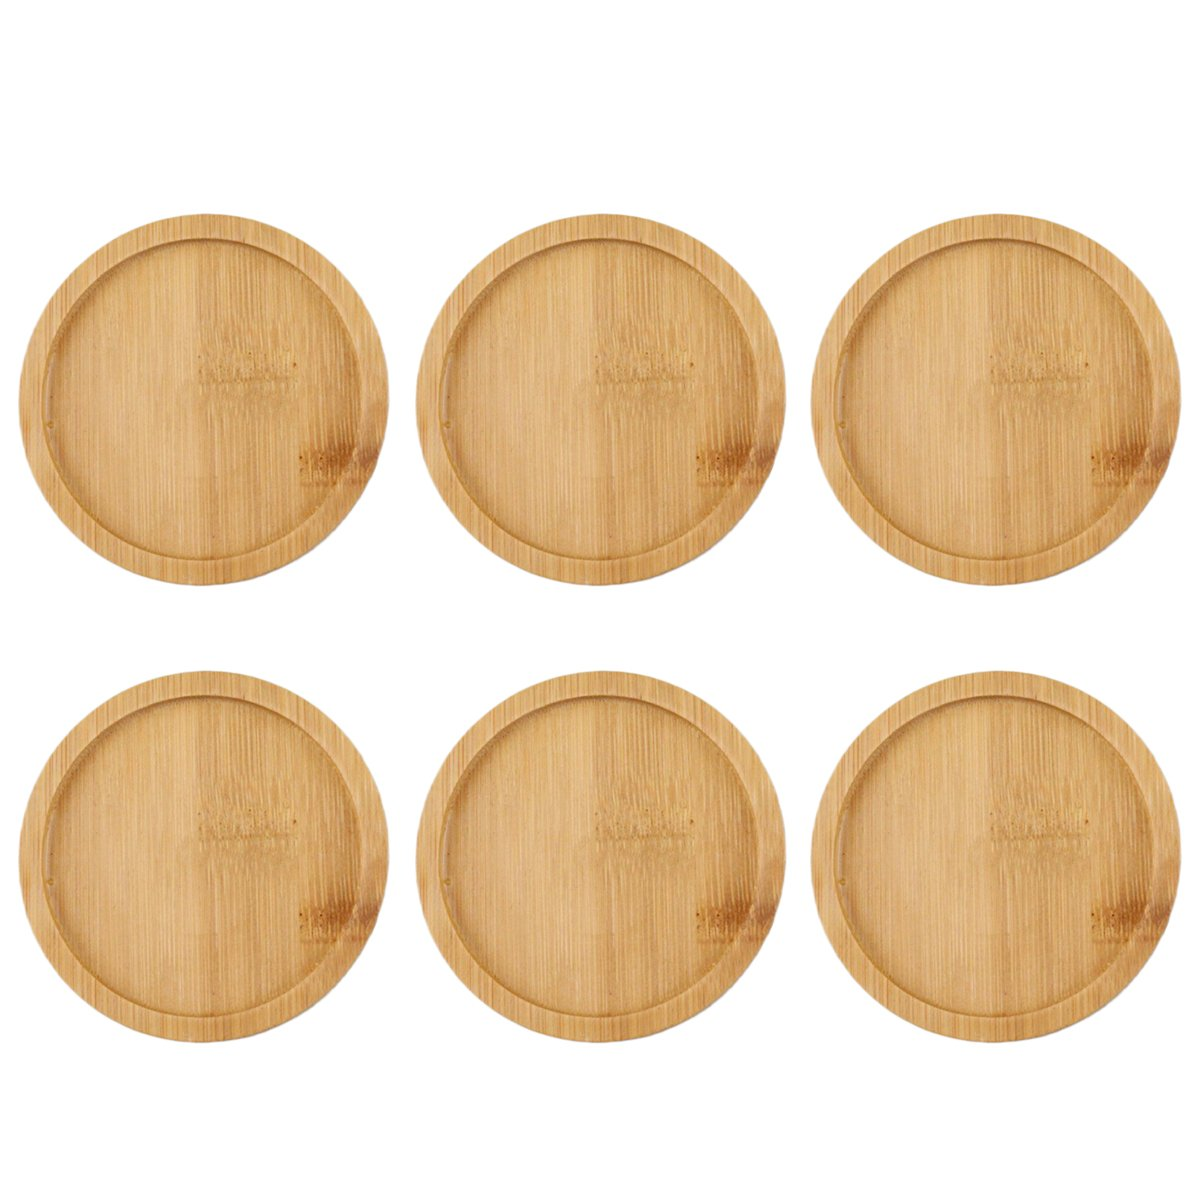 BESTOMZ 6pcs Bamboo Round Plant Saucer Flower Pot Tray Bonsai Succulent for Indoor Outdoor Plants 9.5x9.5cm